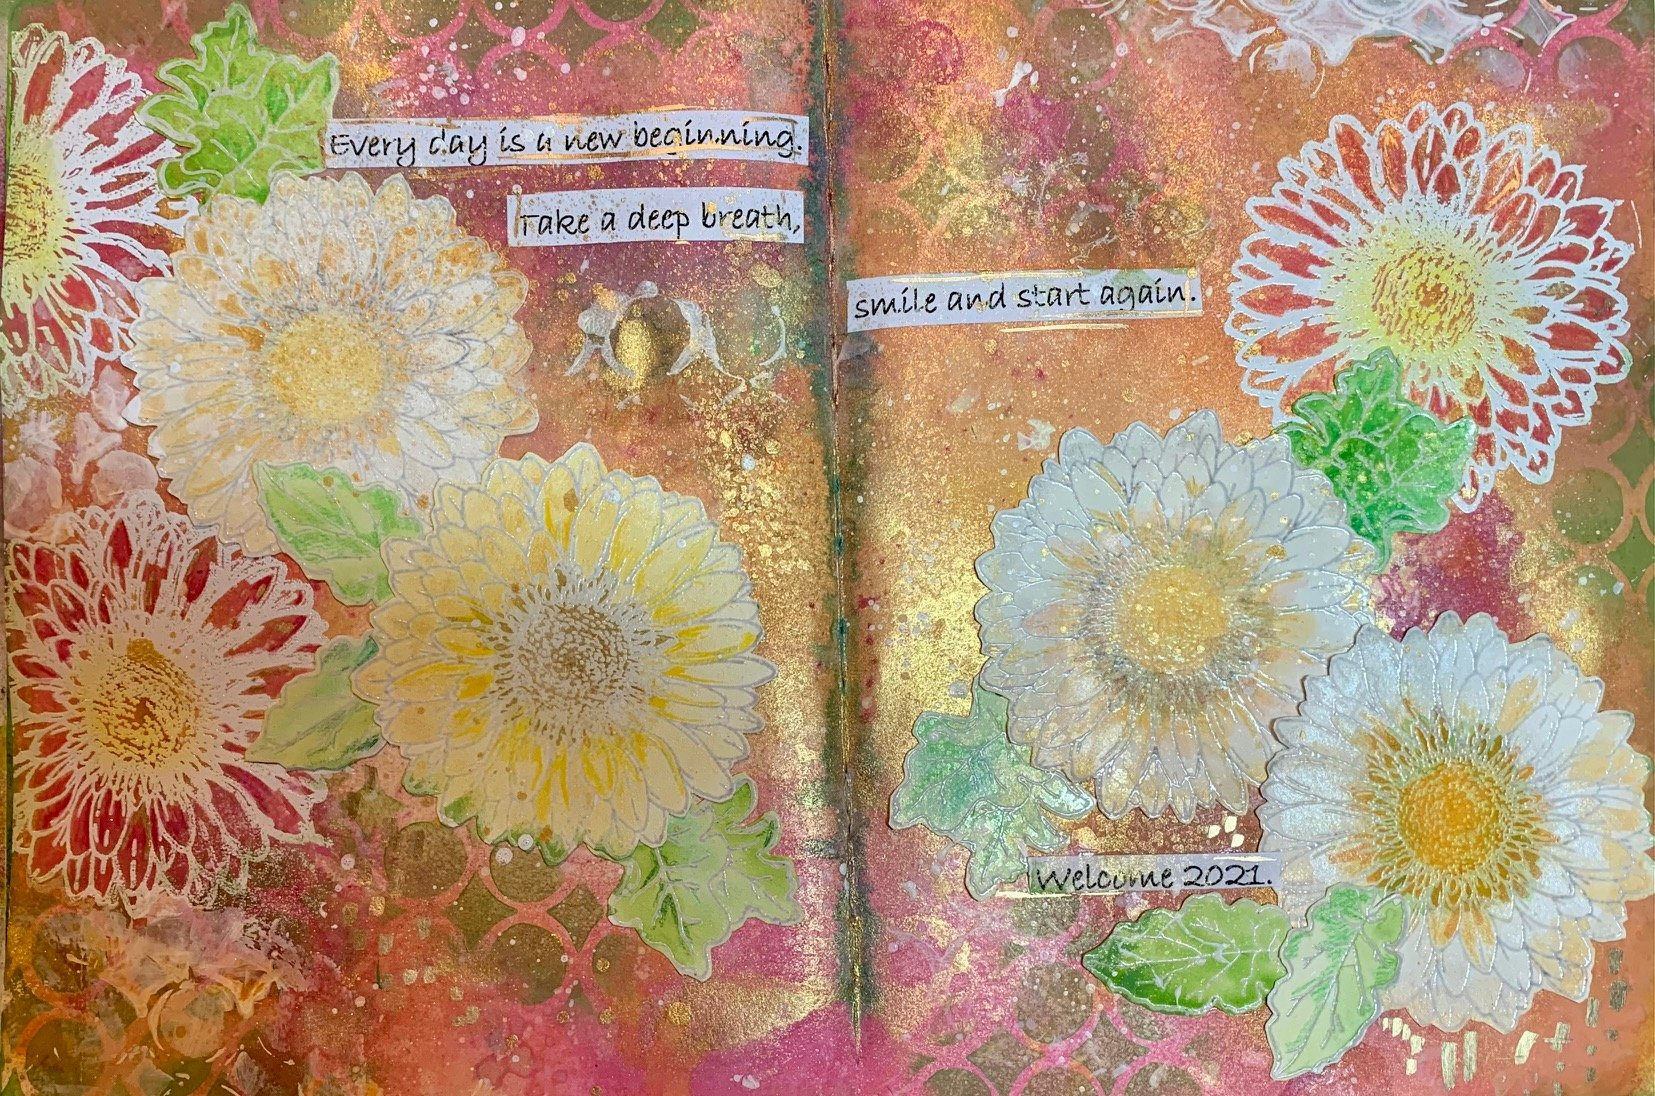 Every Day is a New Beginning - Let's Art Journal!